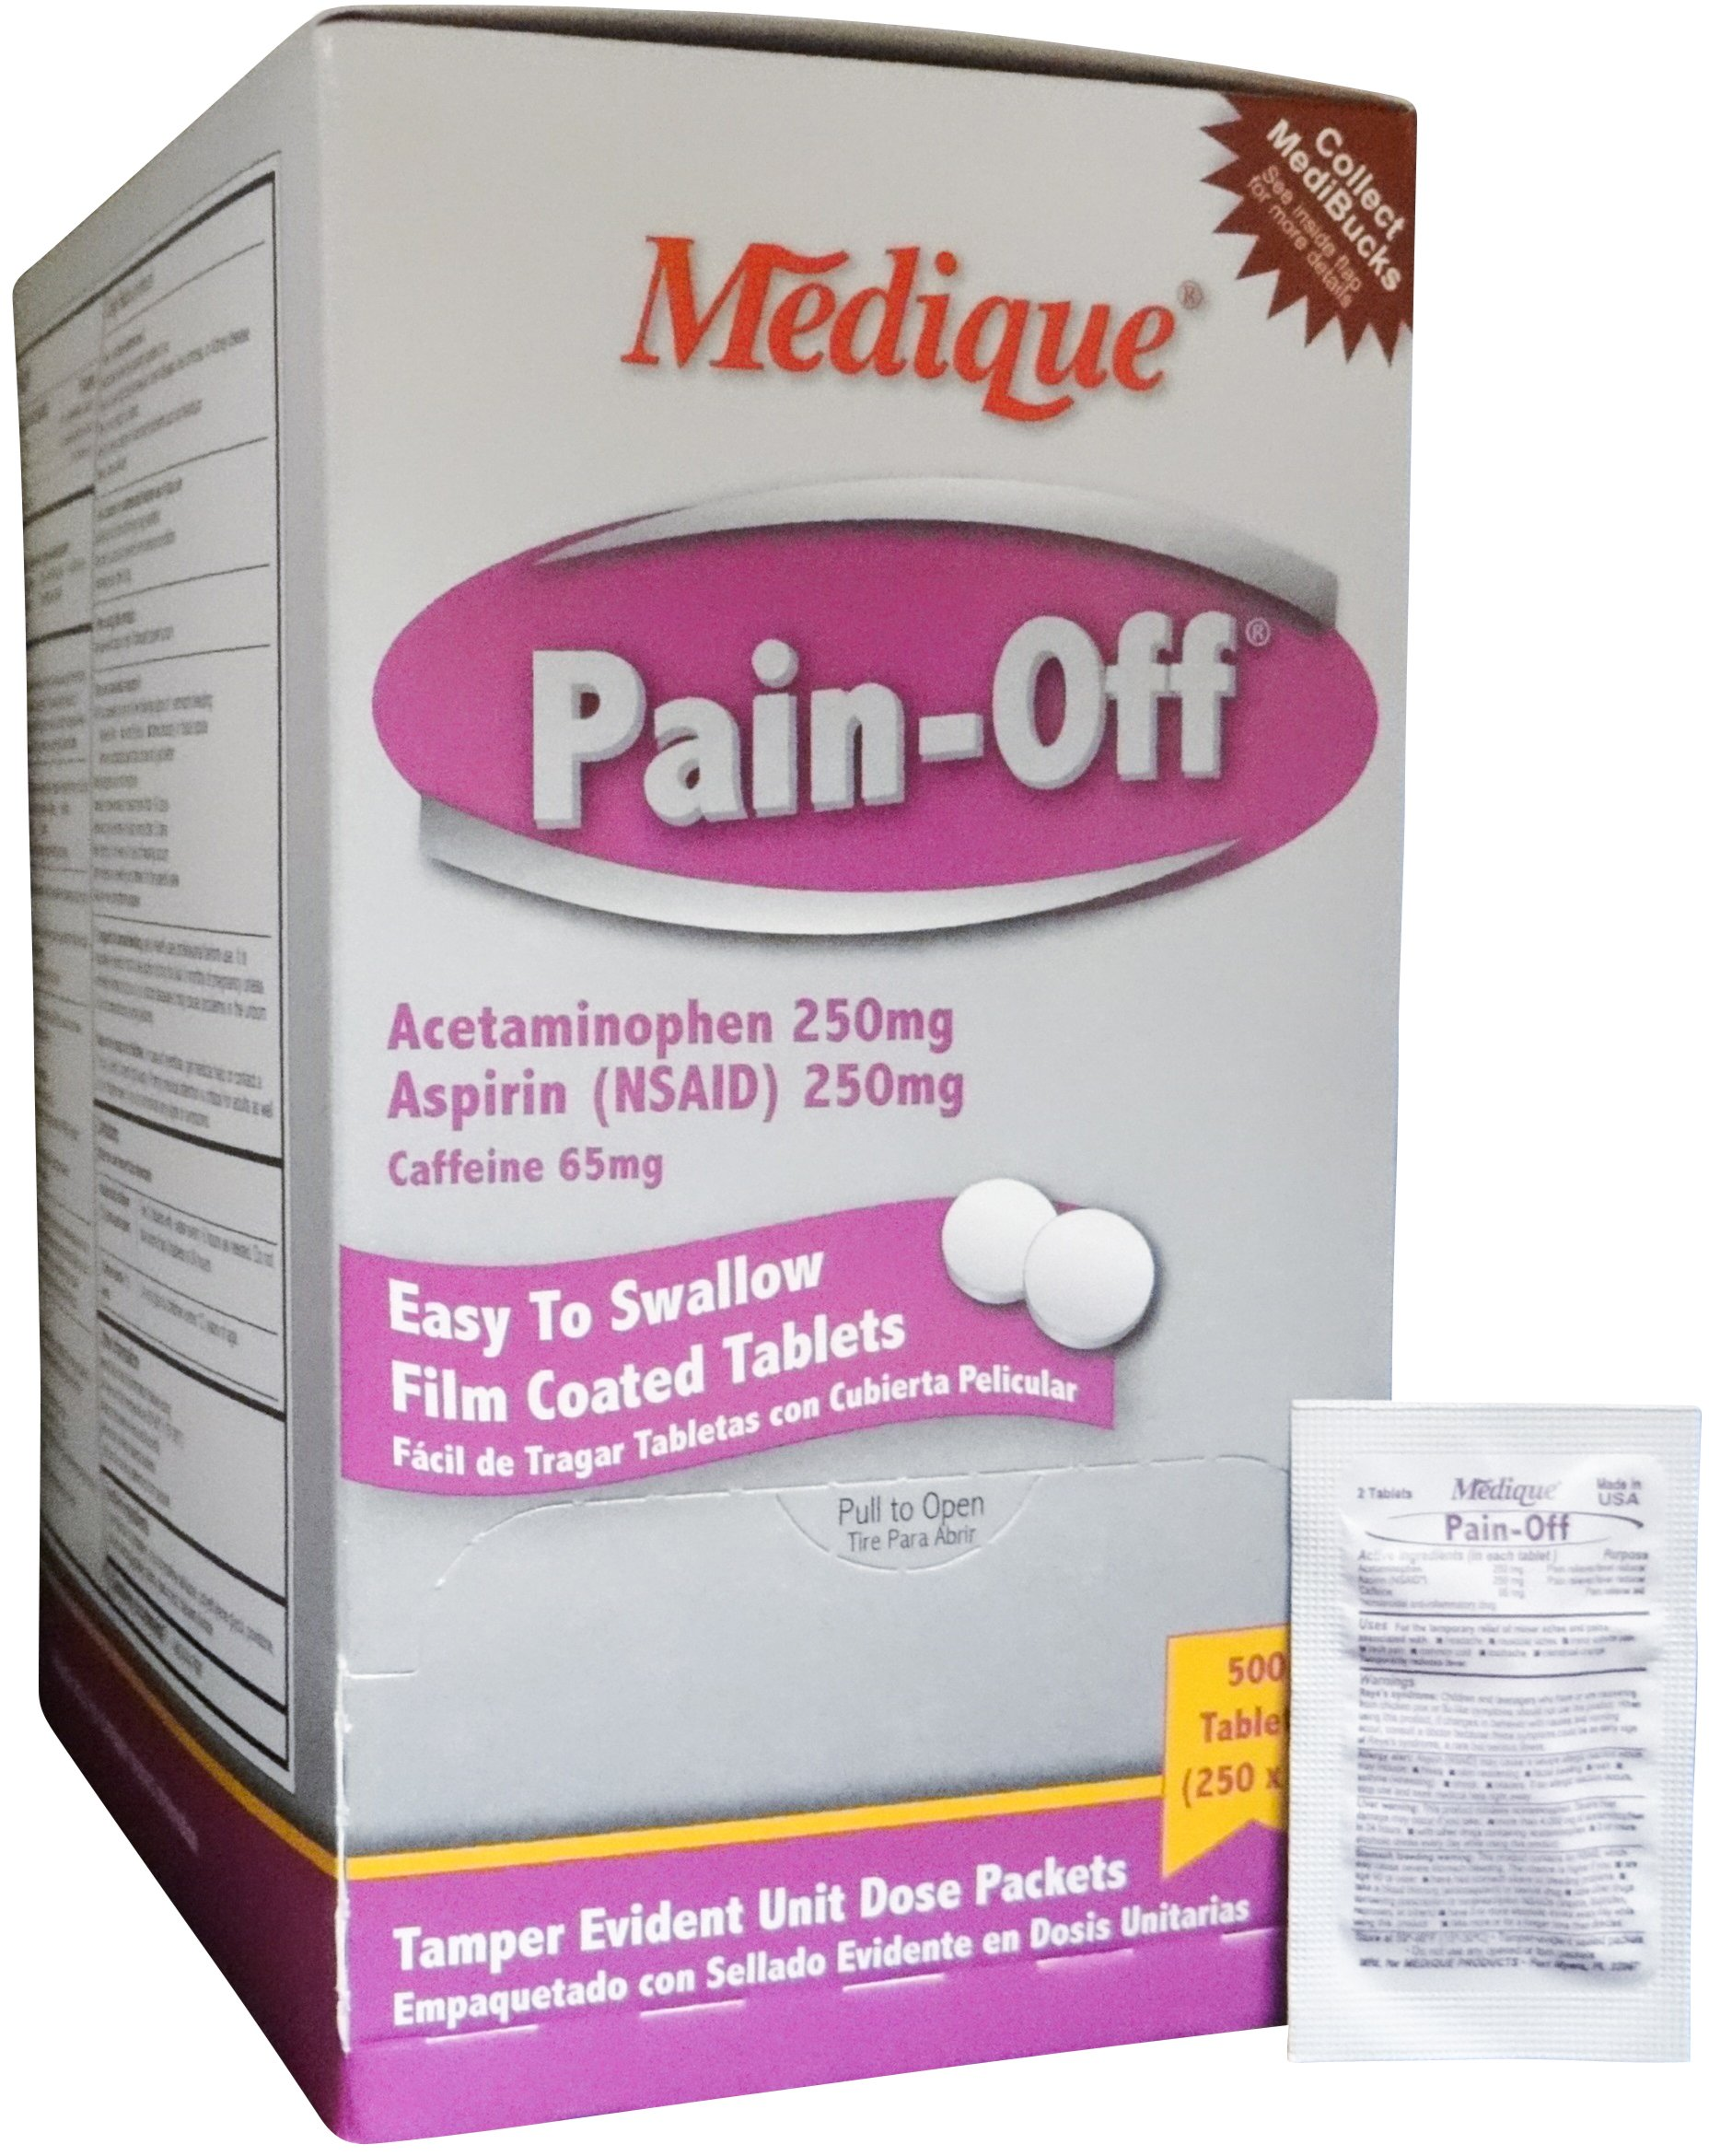 Medique Pain-Off Acetaminophen Pain Reliever Tablets - MS71175 (3,000) by Medique